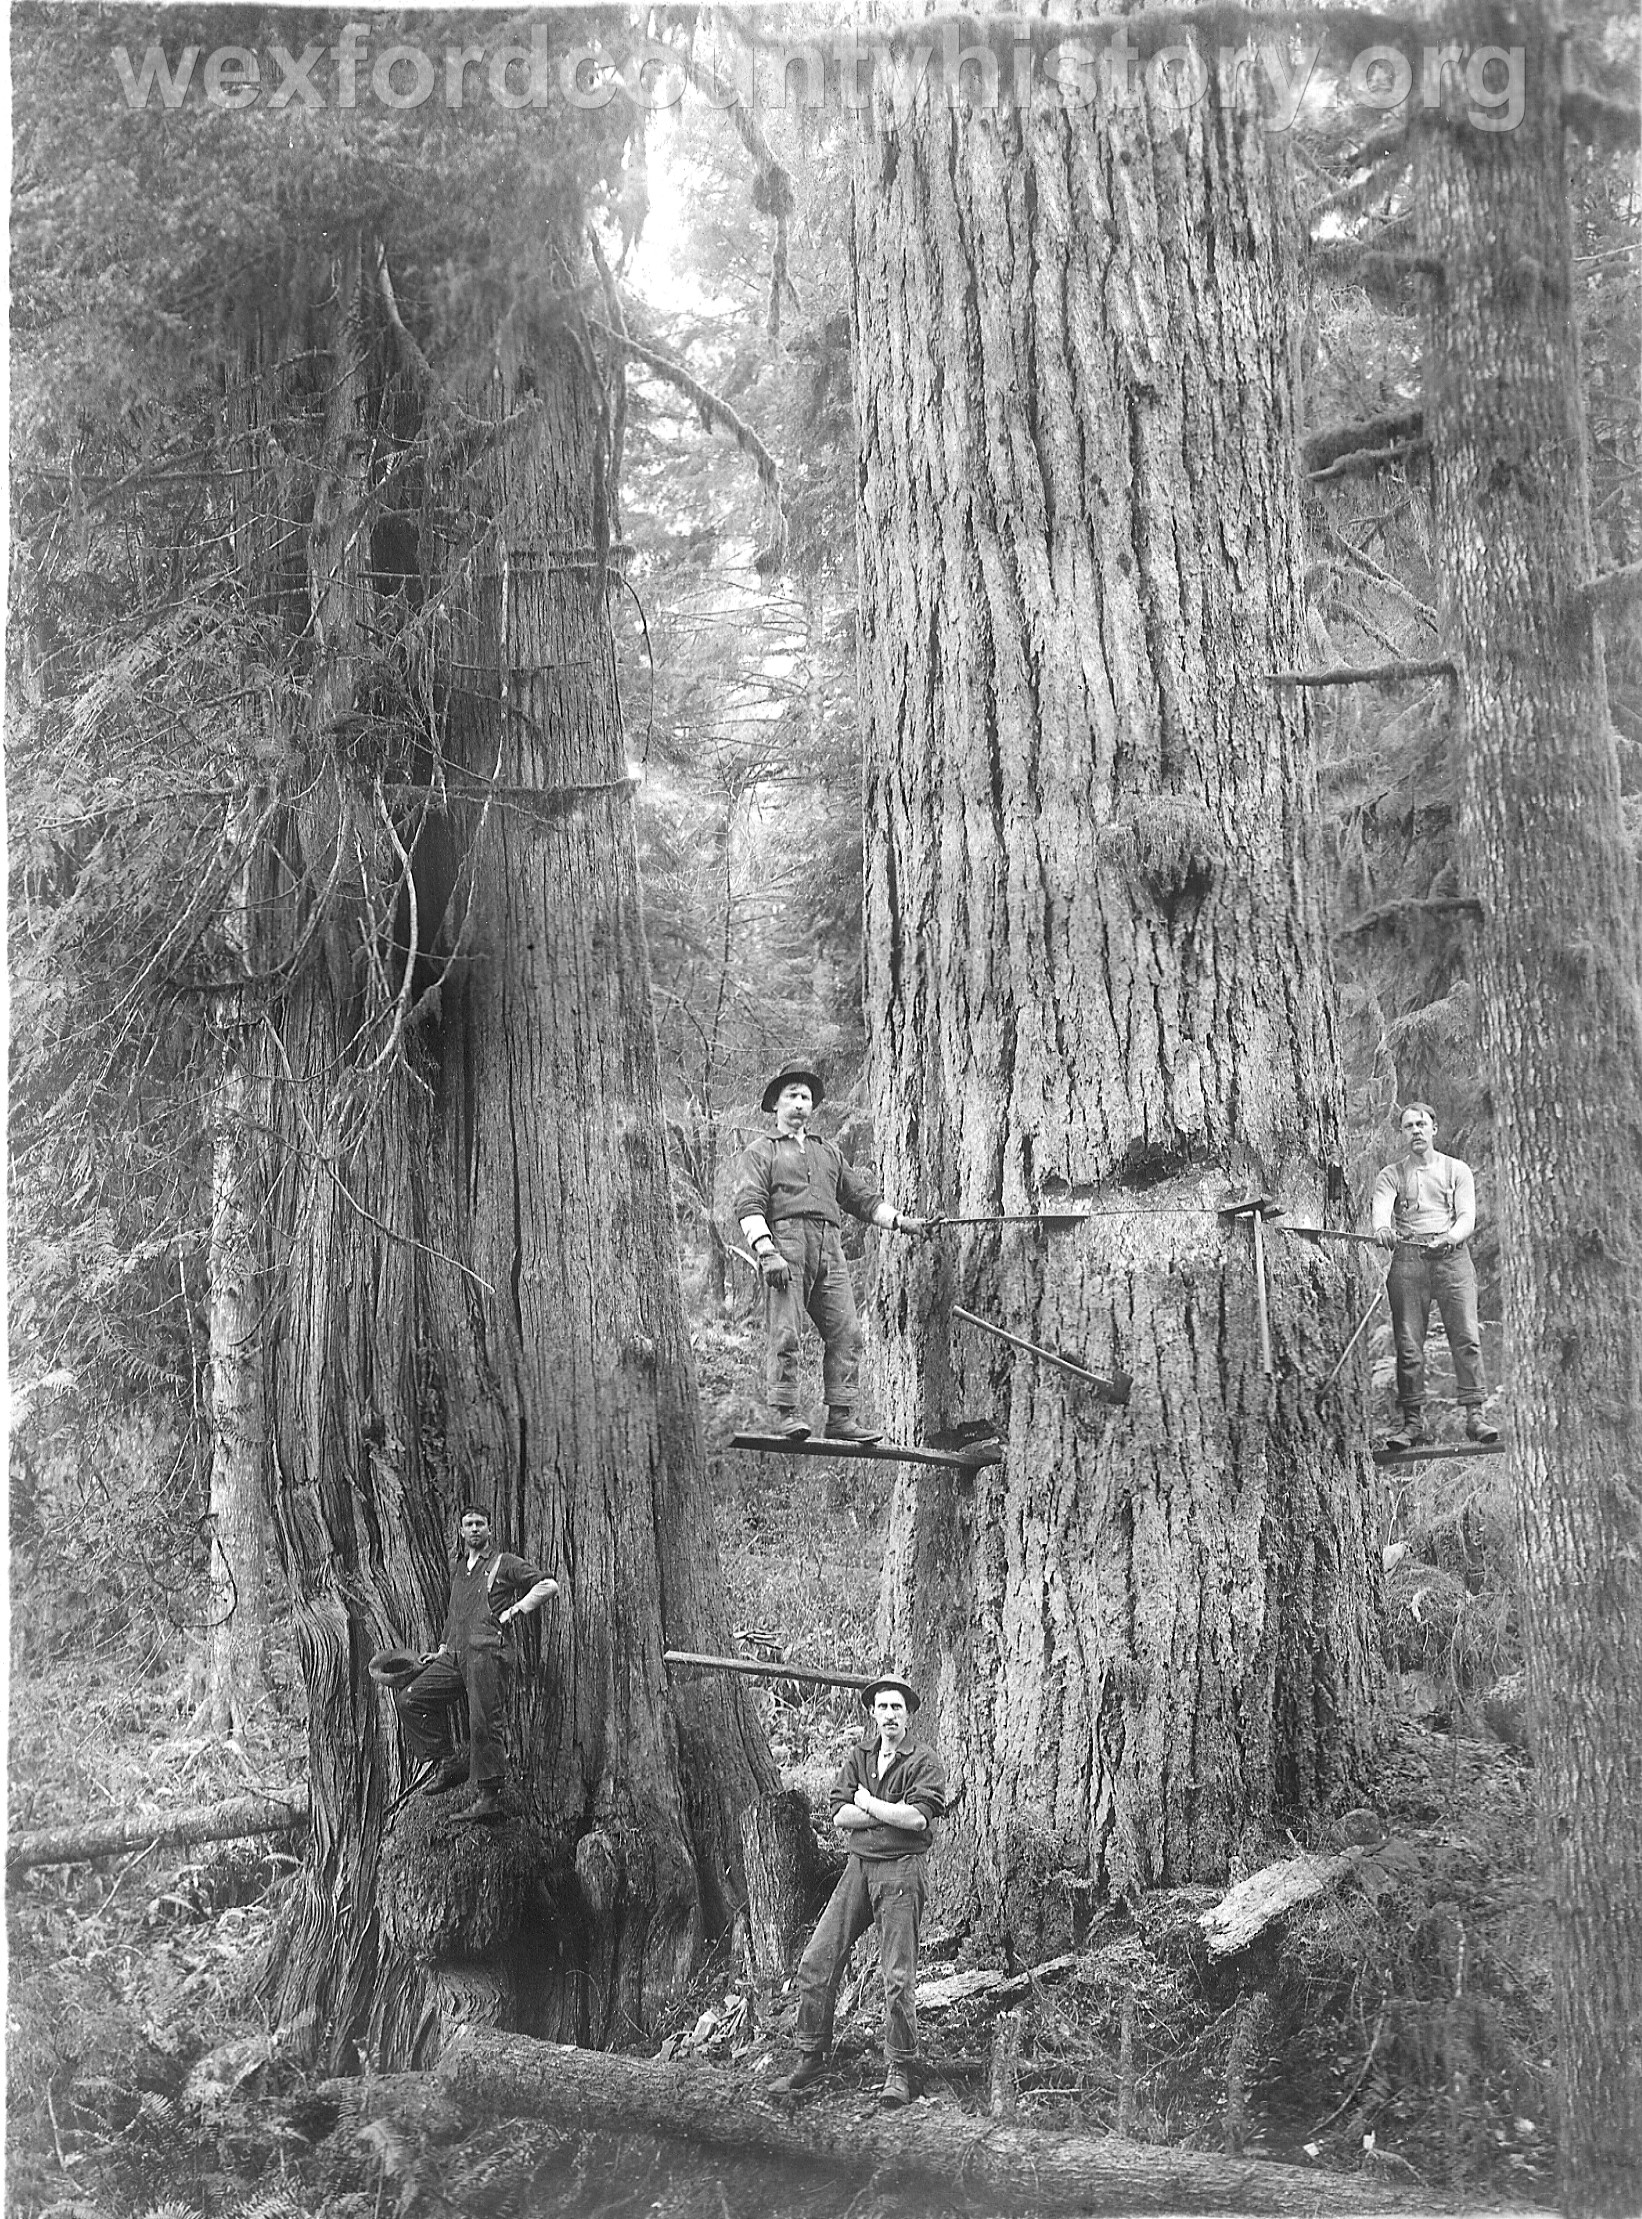 Wexford-County-Lumber-Timber-Harvest-Circa-1890s-3